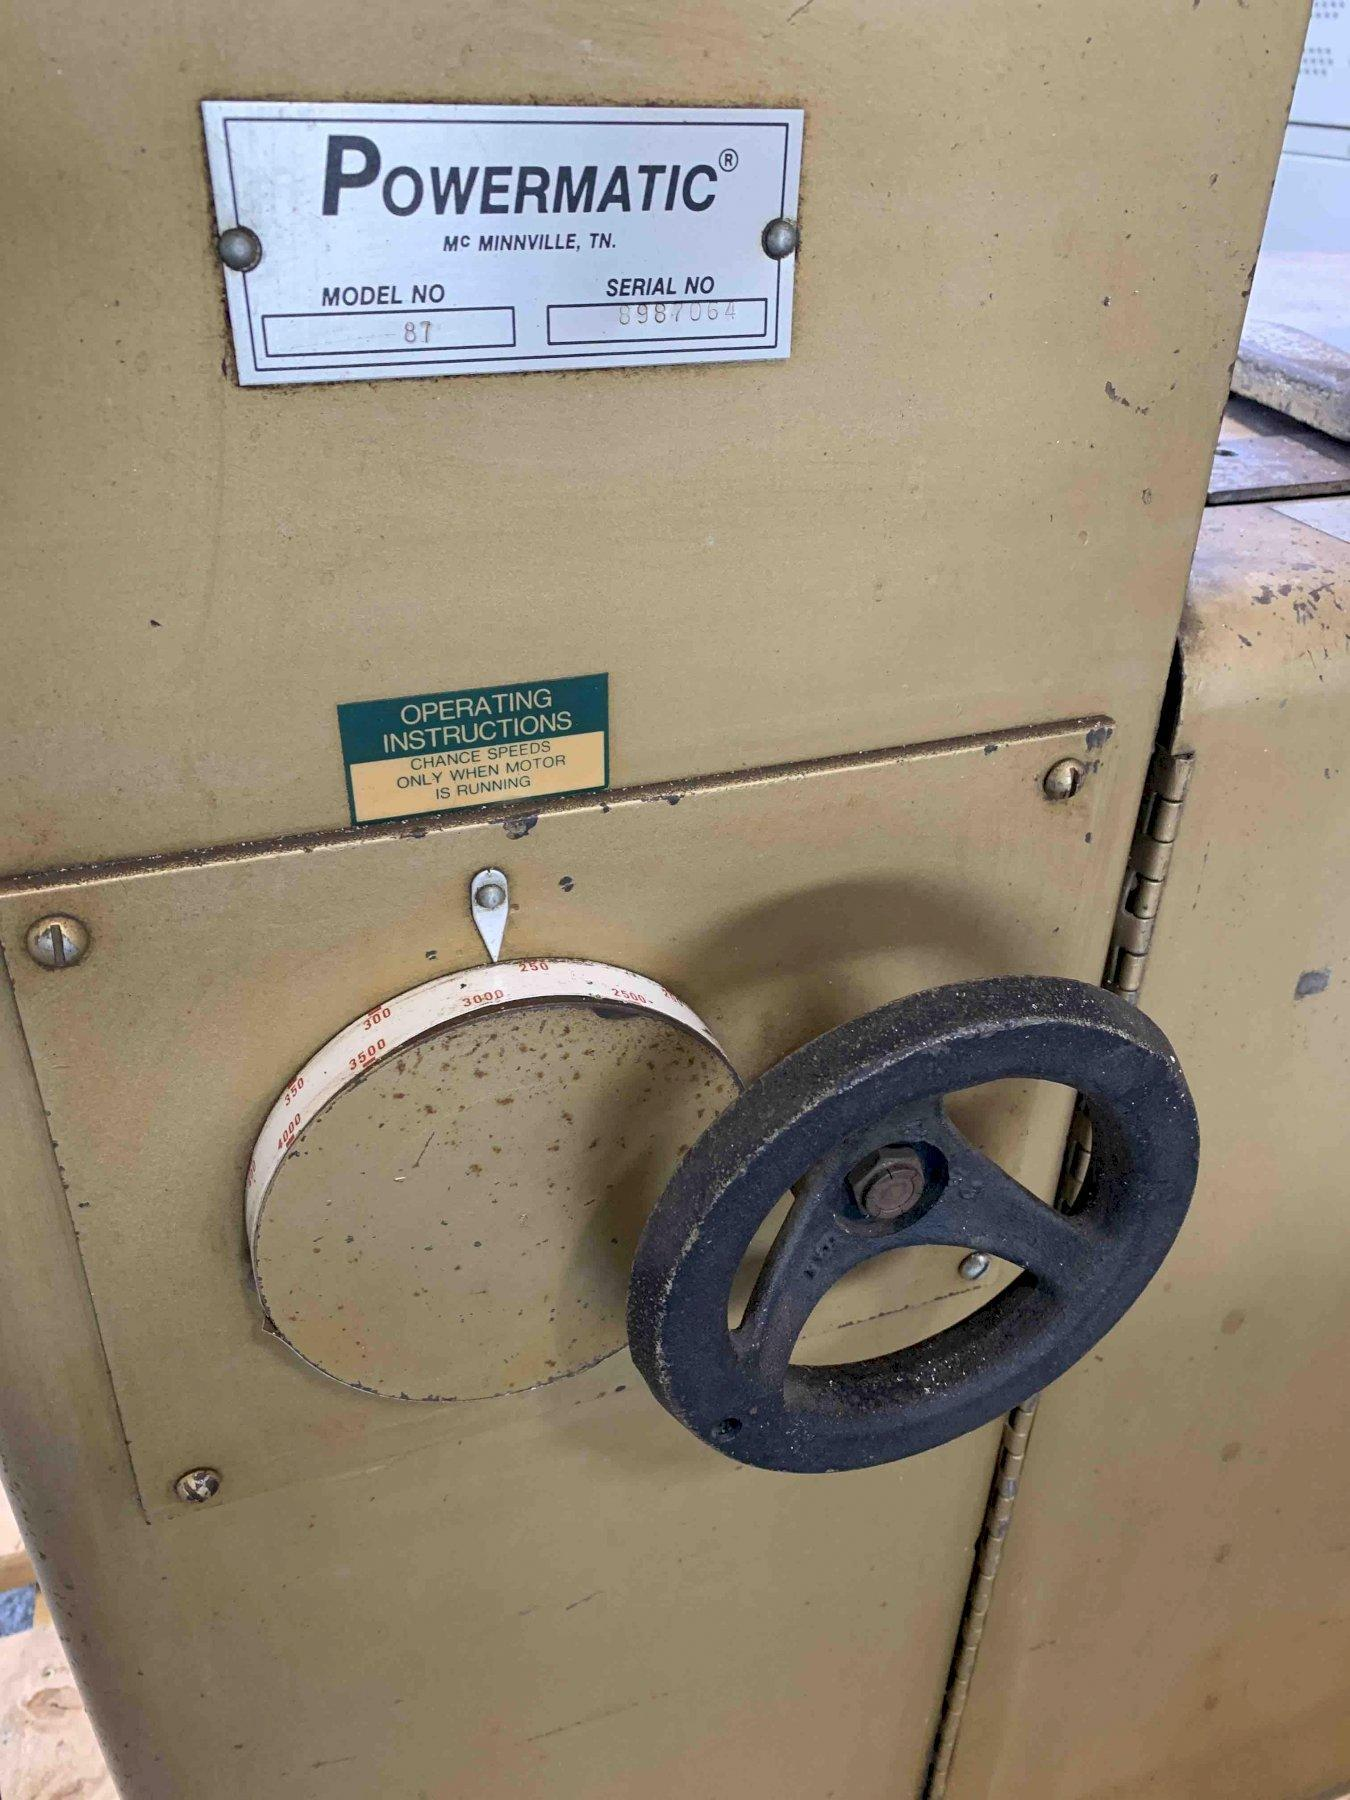 "USED POWERMATIC 20"" VERTICAL CONTOUR BANDSAW WITH BLADE WELDER MODEL 87, Year 1988, Stock # 10741"